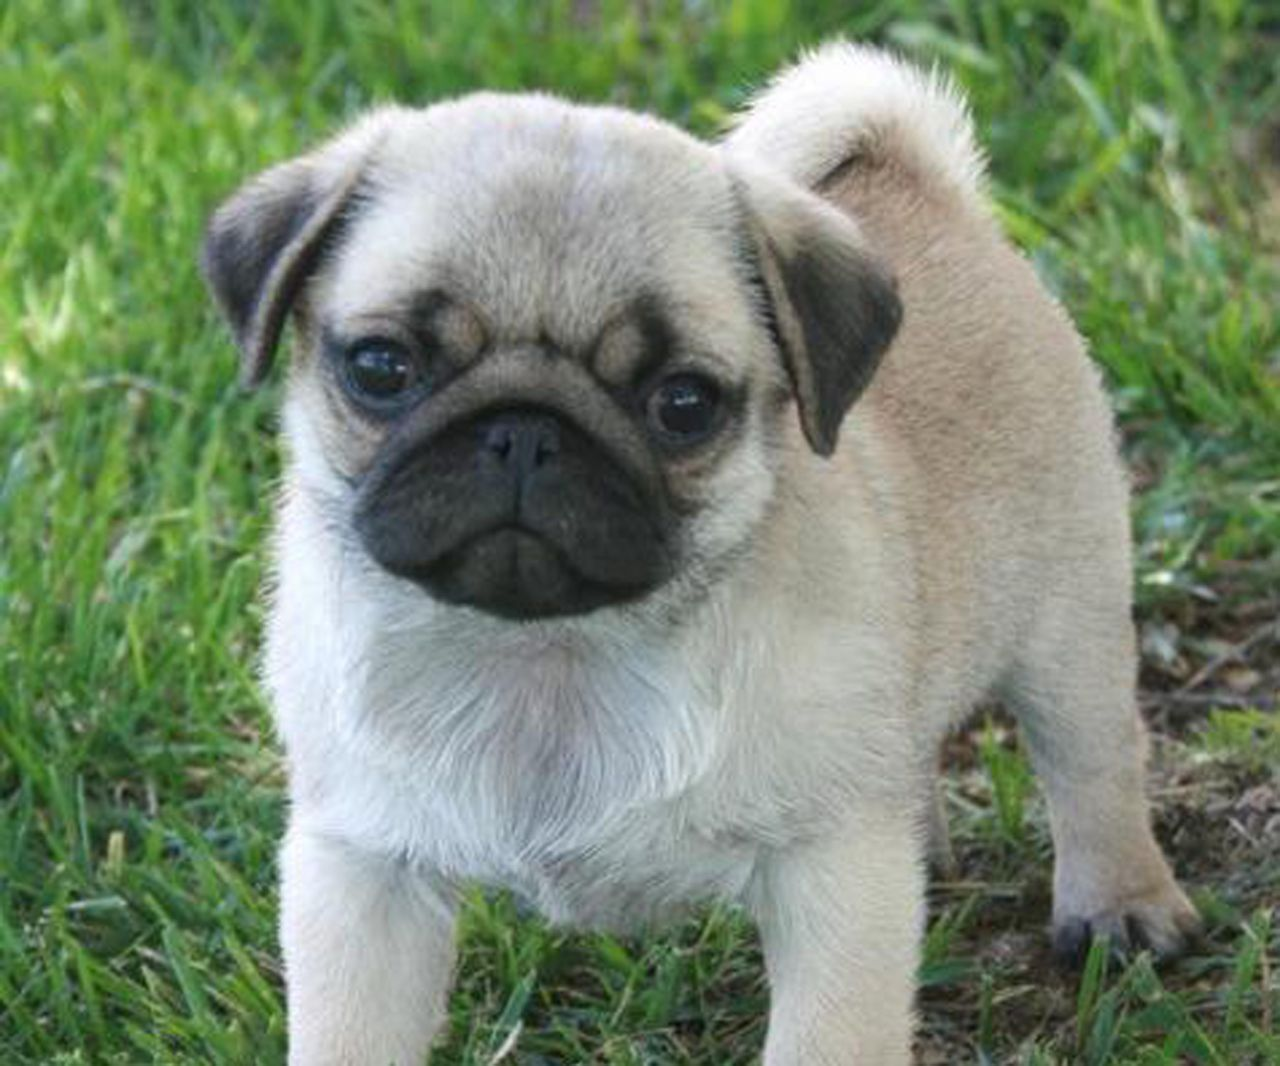 This Pug Puppies For Sale 580 Posted 26 Days Ago For Sale Dogs Pug